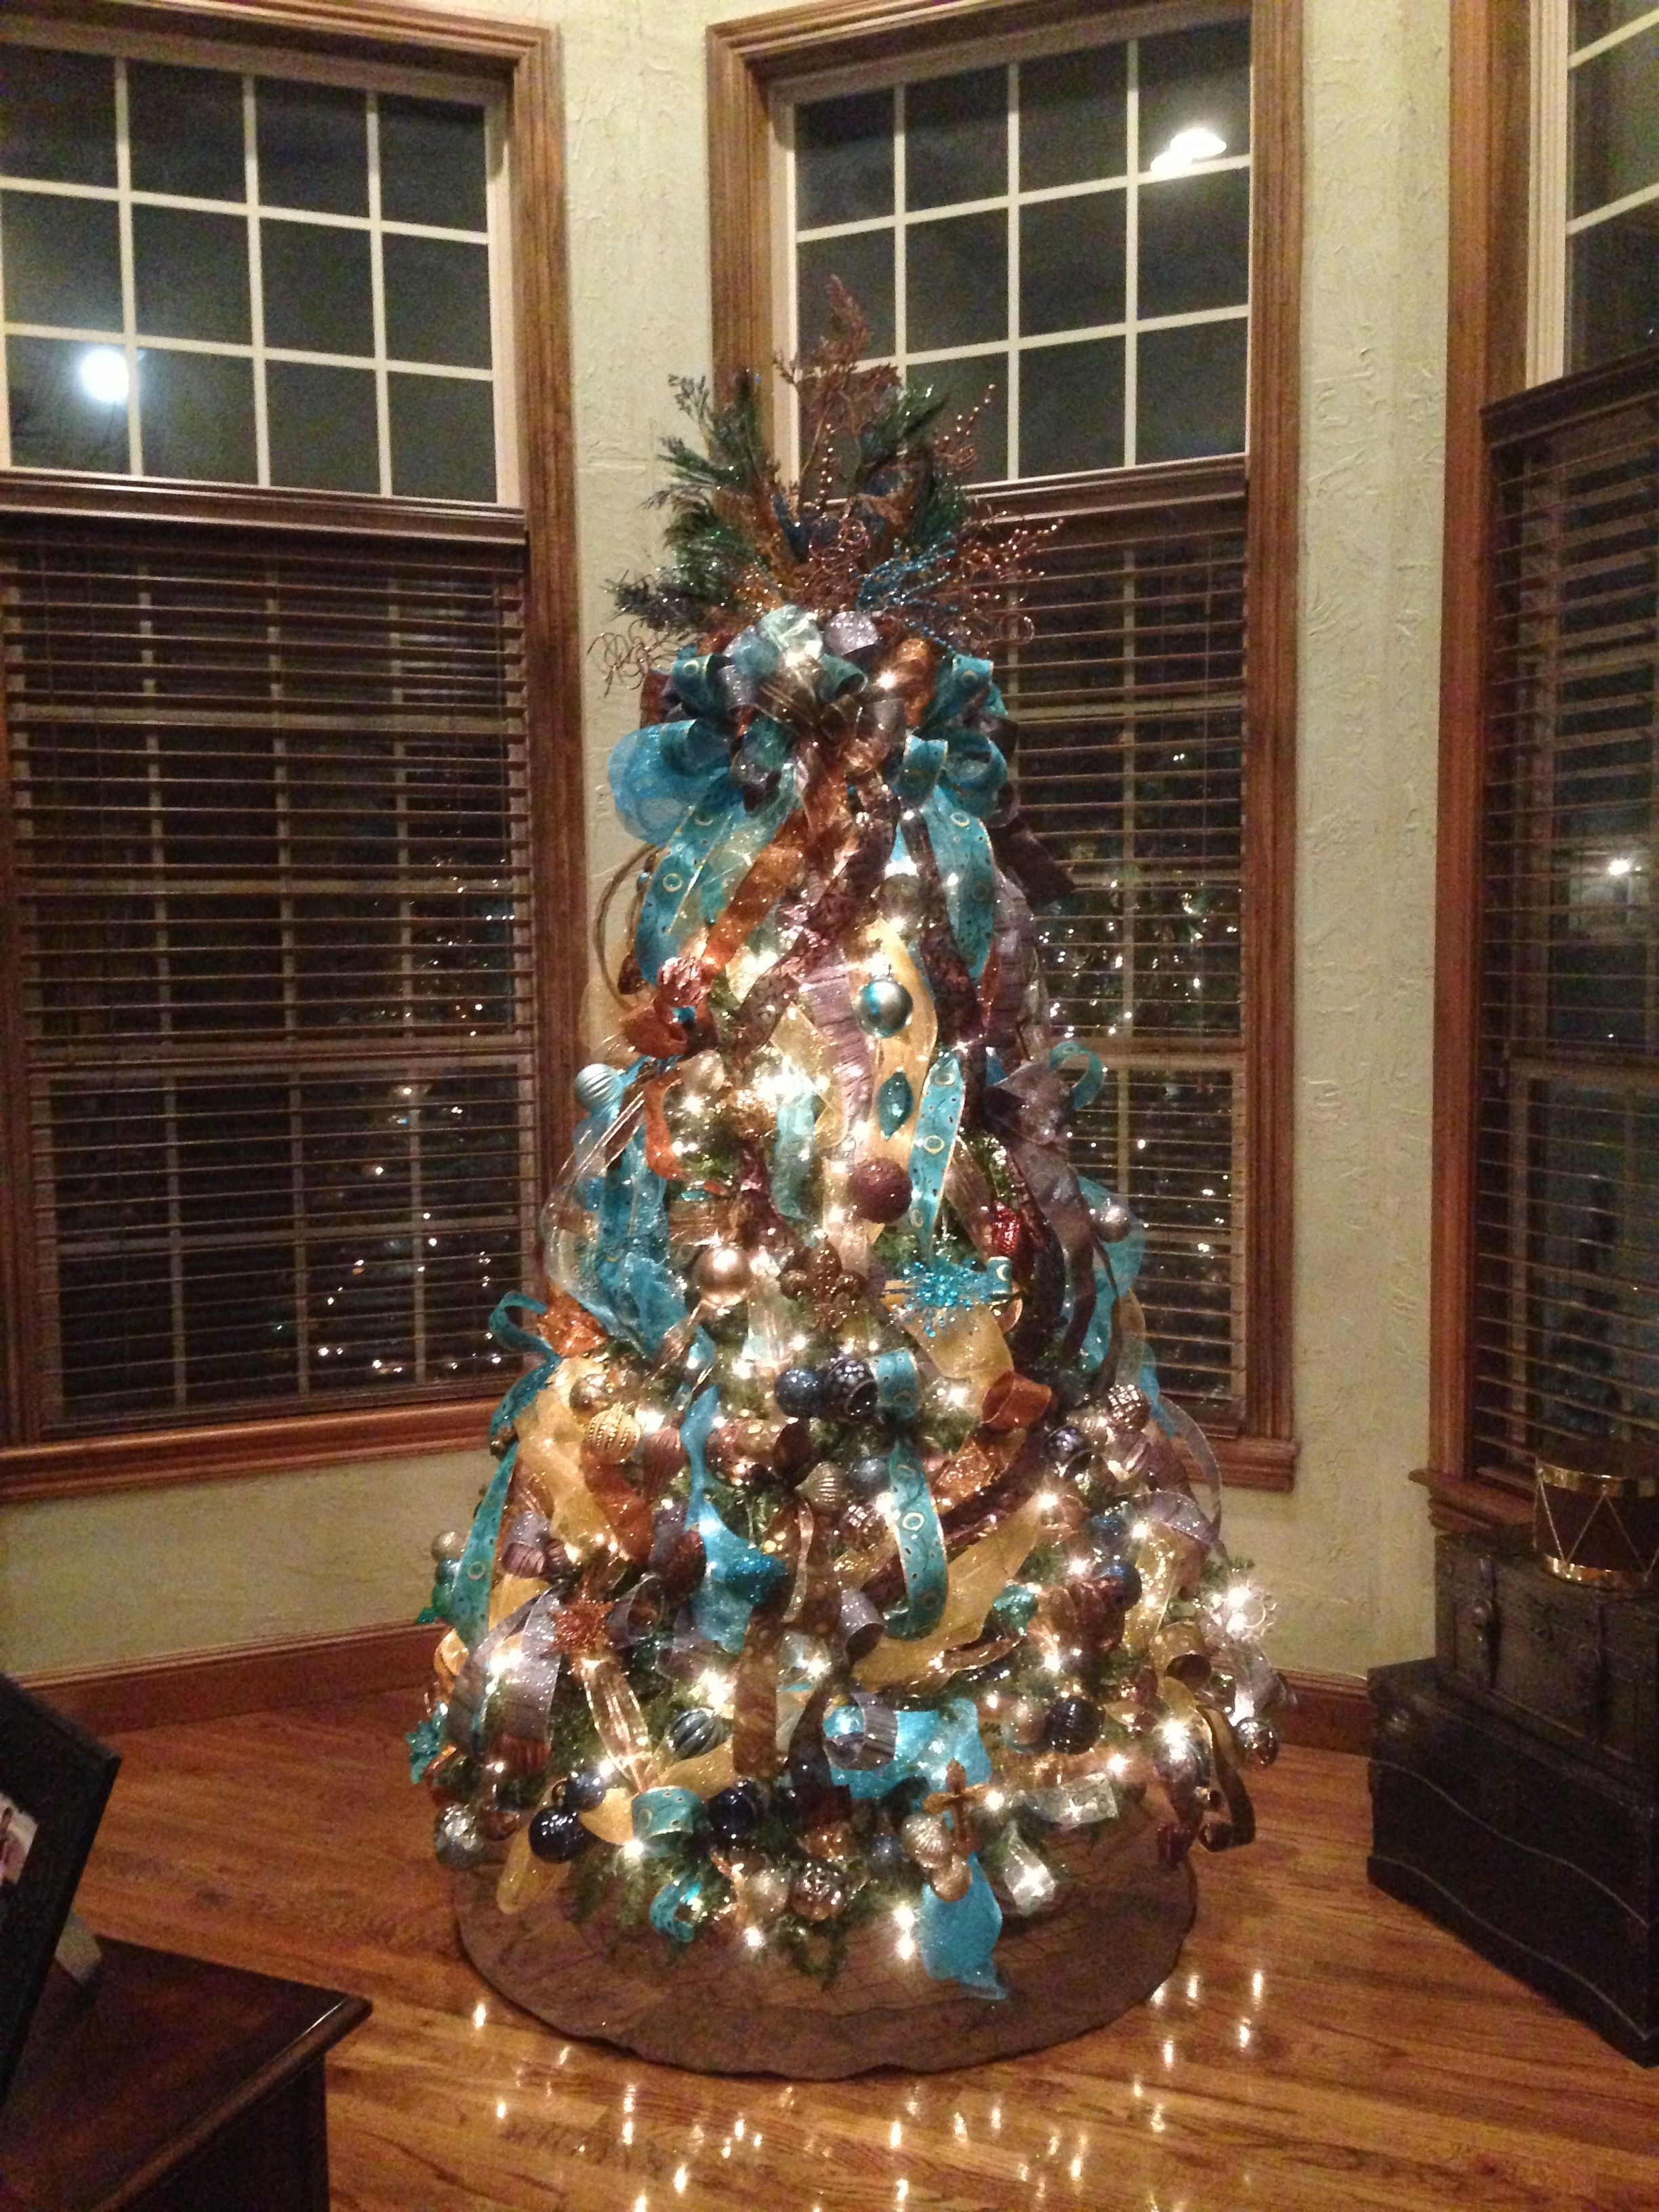 Western Christmas Tree Decorations.Chocolate Brown And Turquoise Christmas Tree Works Perfect